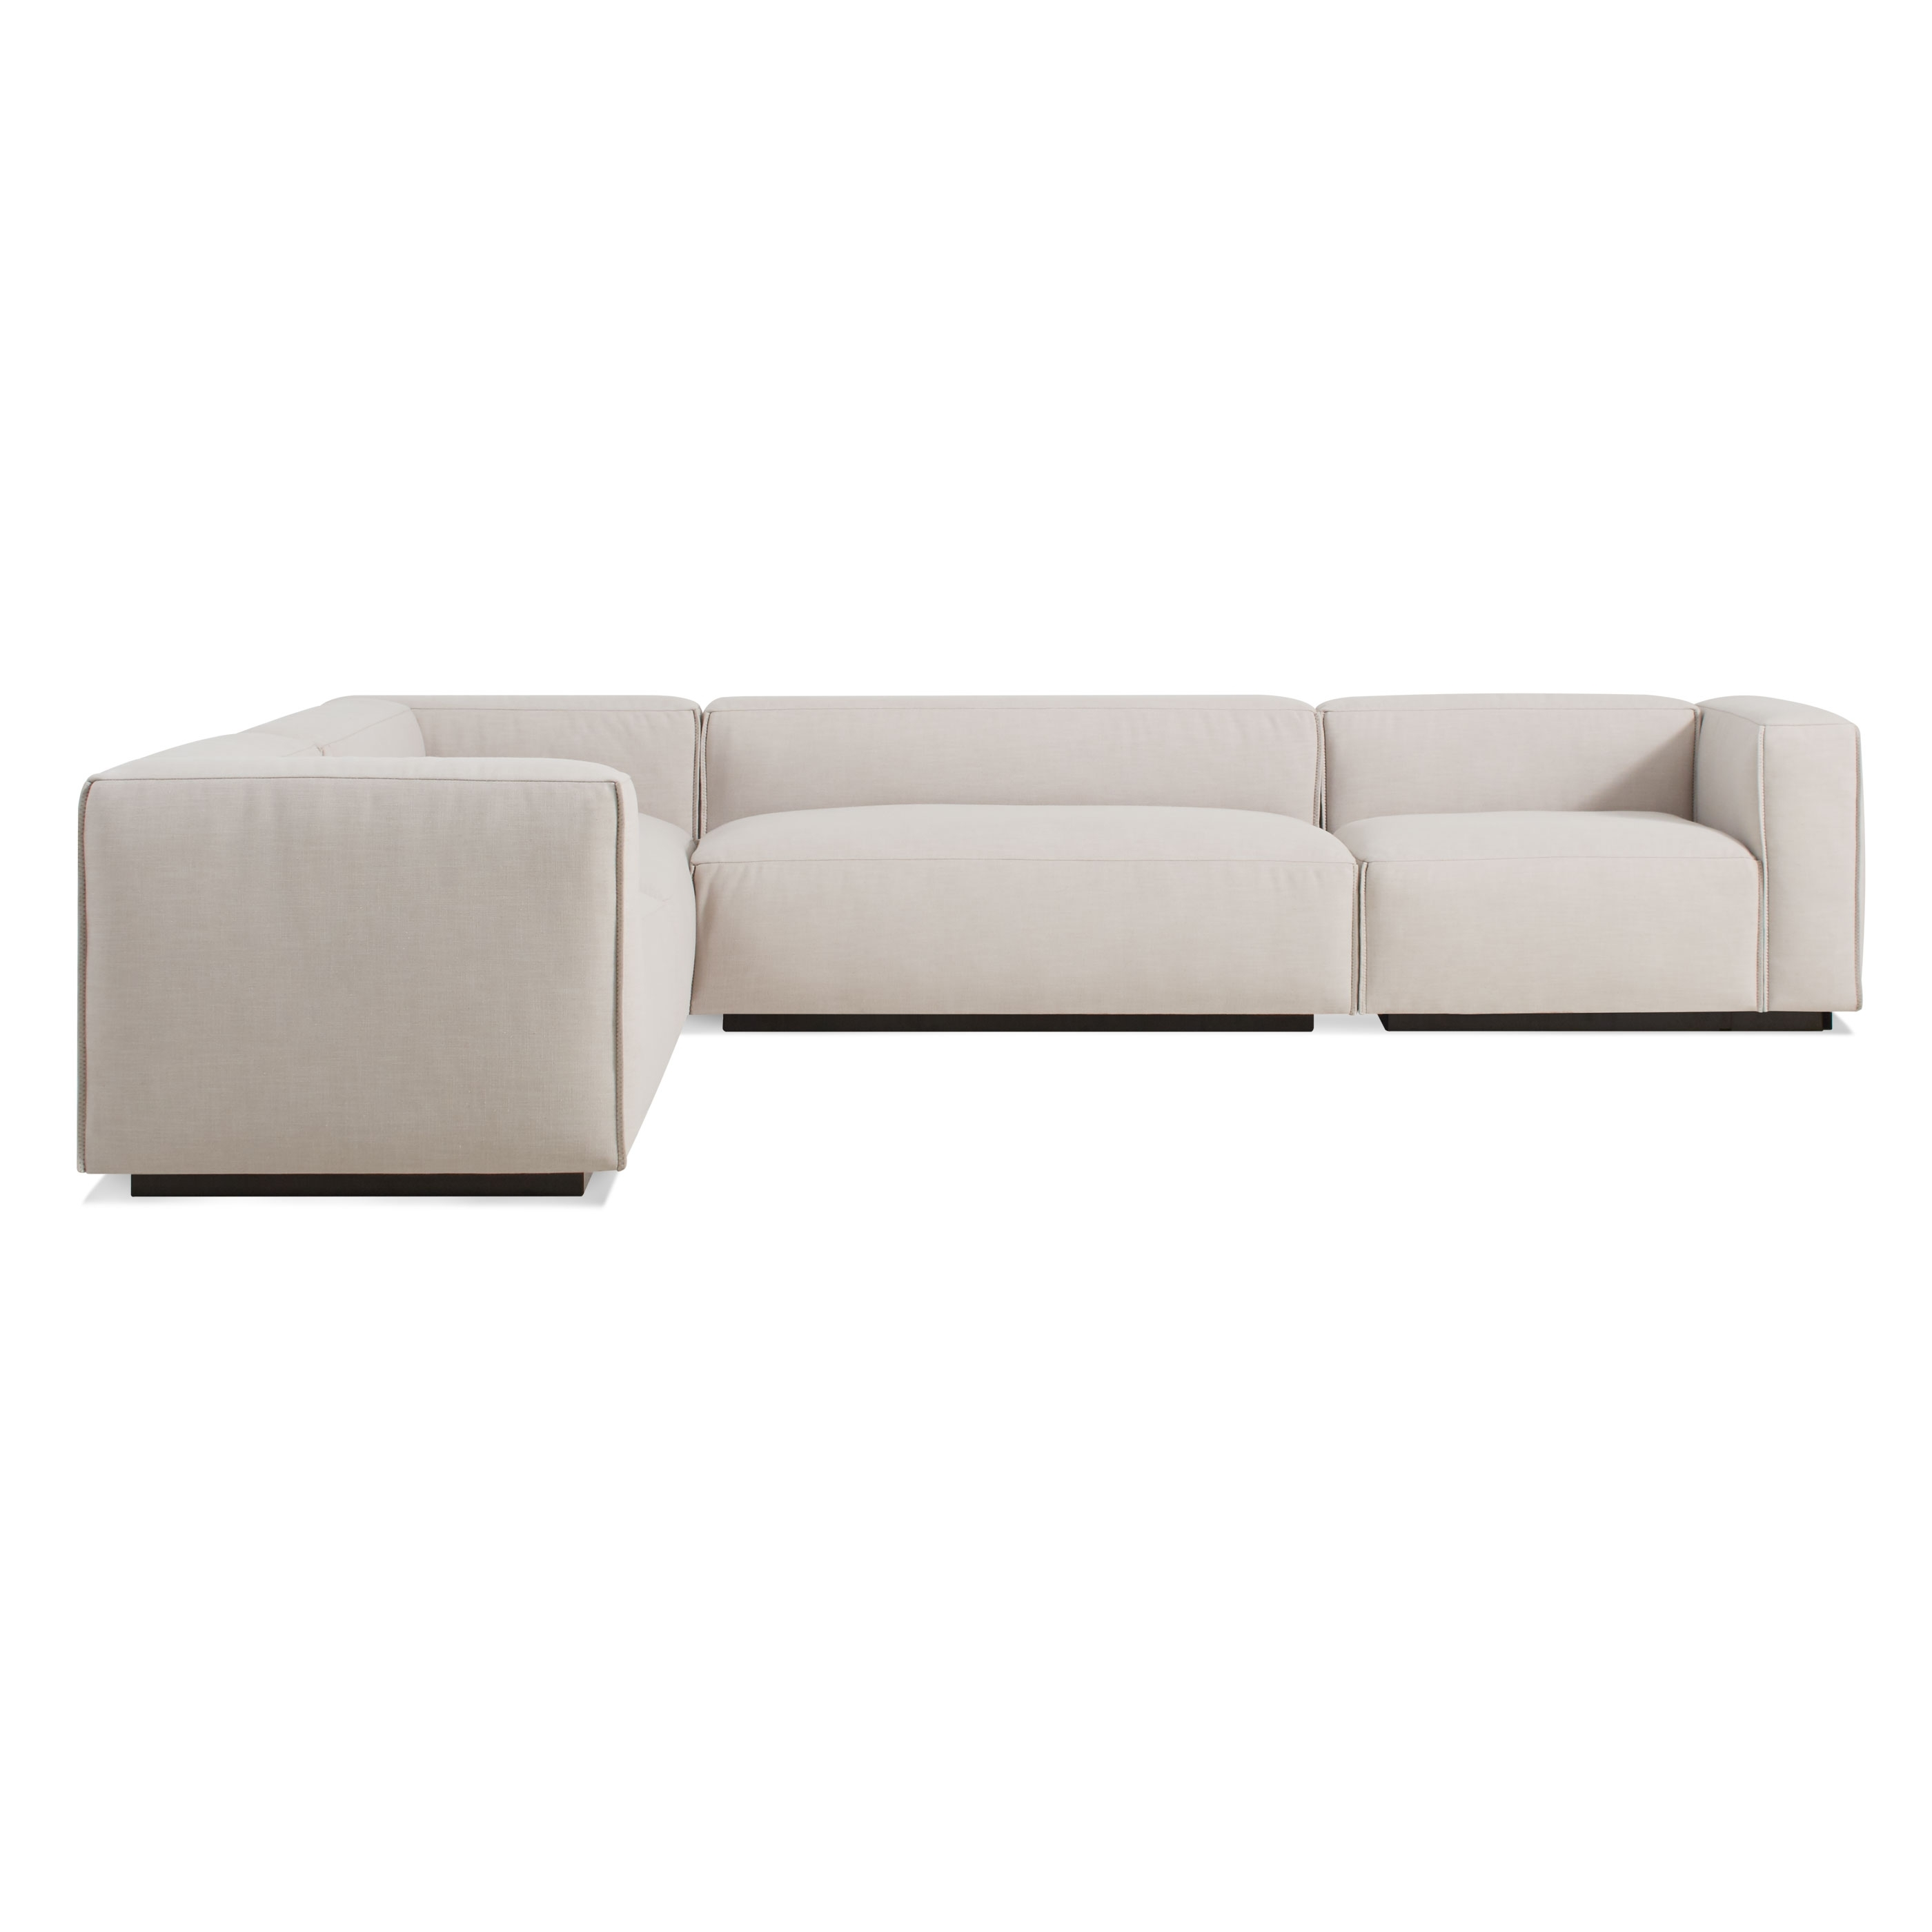 Cleon Large Modern Sectional Sofa | Blu Dot Inside Newfoundland Sectional Sofas (View 8 of 10)